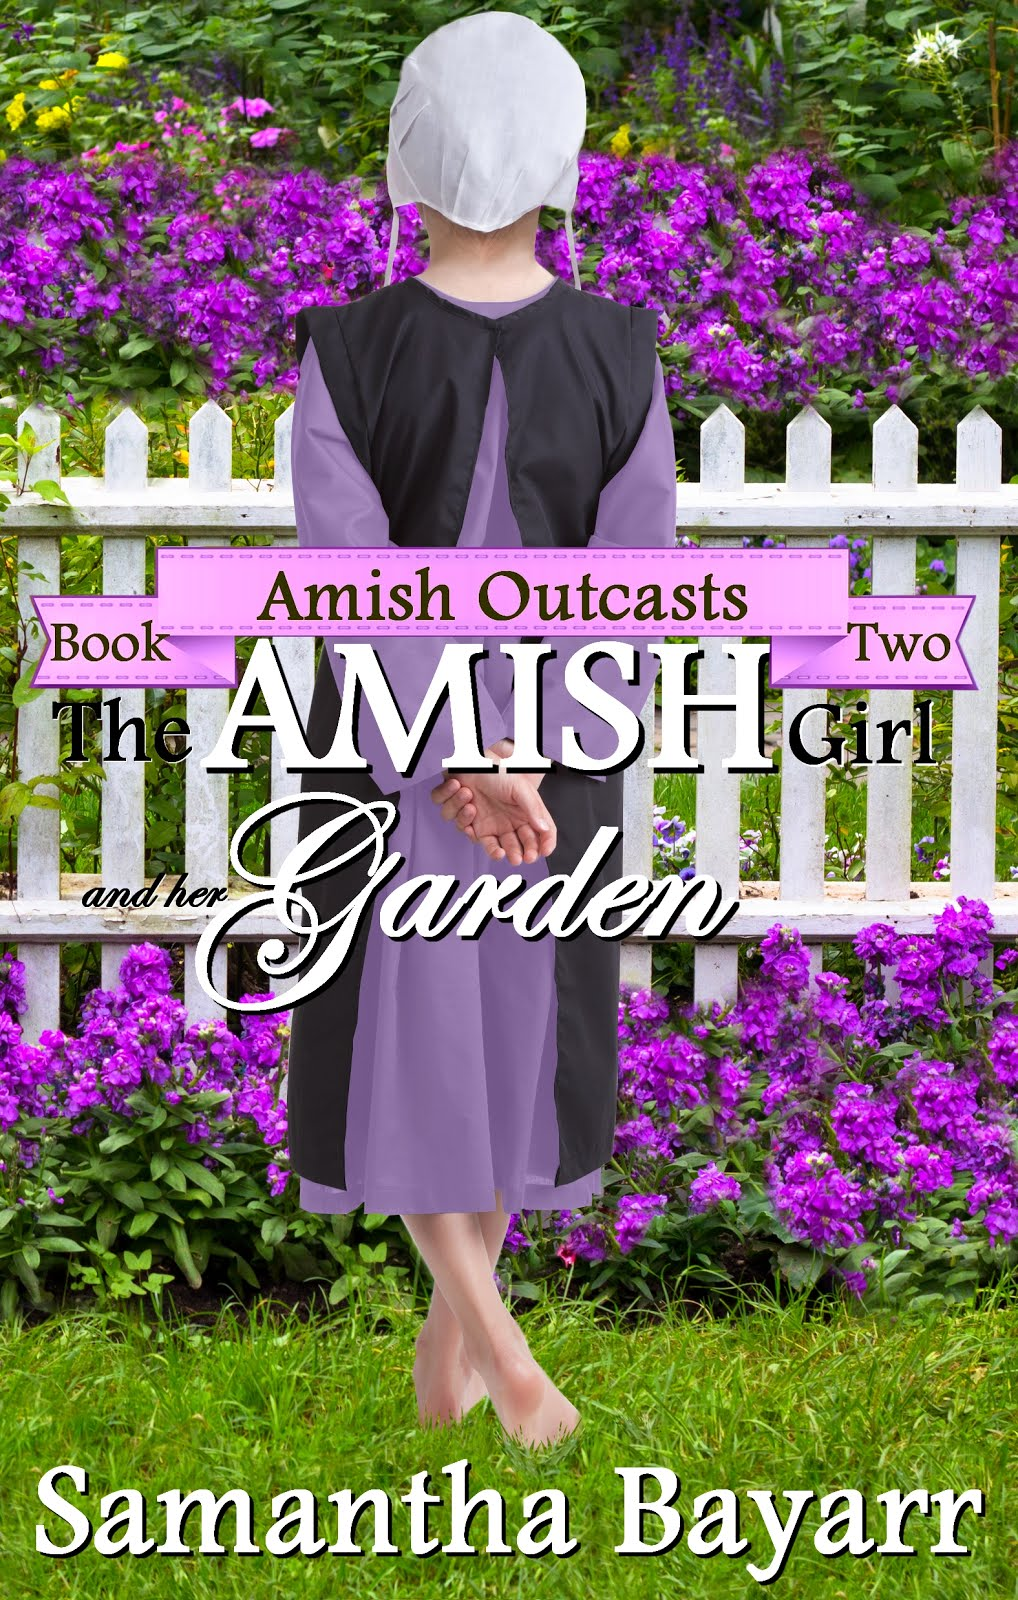 Amish Girl and her Garden